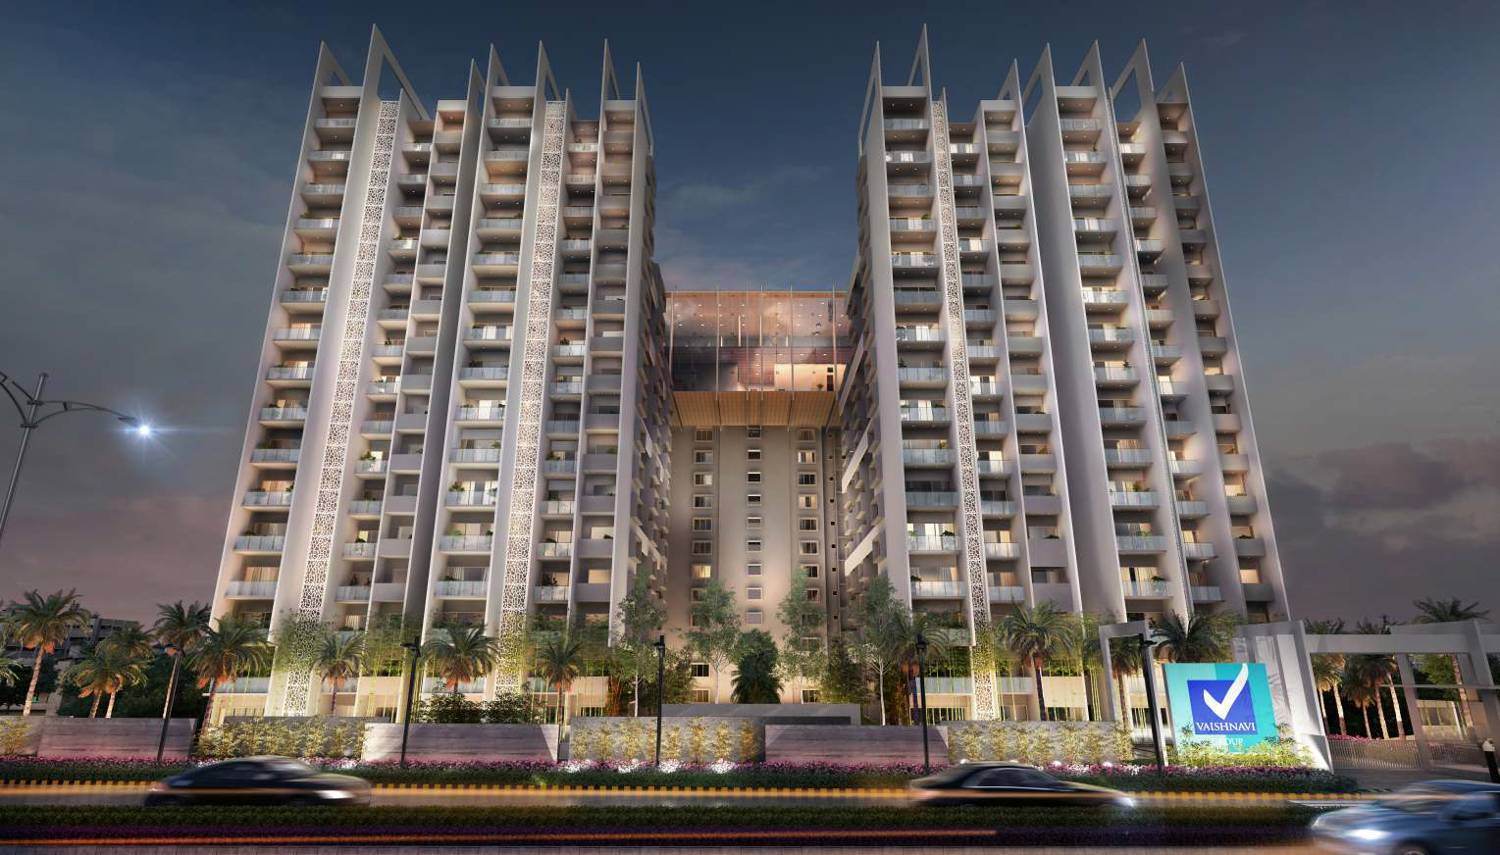 Vaishnavi Oasis Is Top Ing Apartment In South Bangalore This Luxury Situated At Jp Nagar 9th Phase Project Well Connected